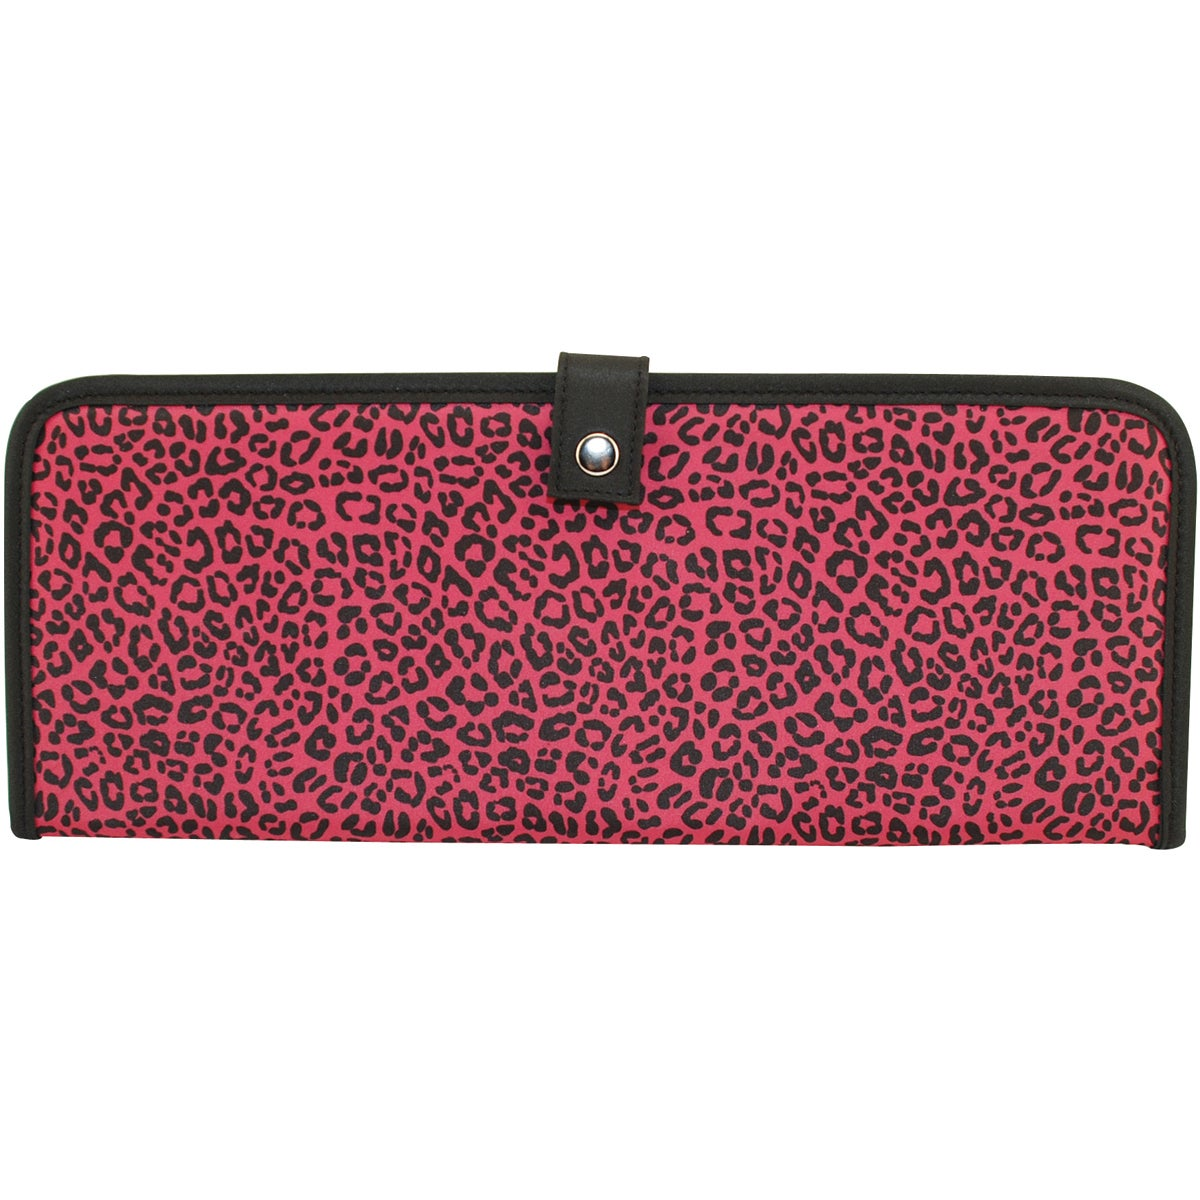 Mackinac Moon Knitting Needle Holder-Animal Print-Pink/Black